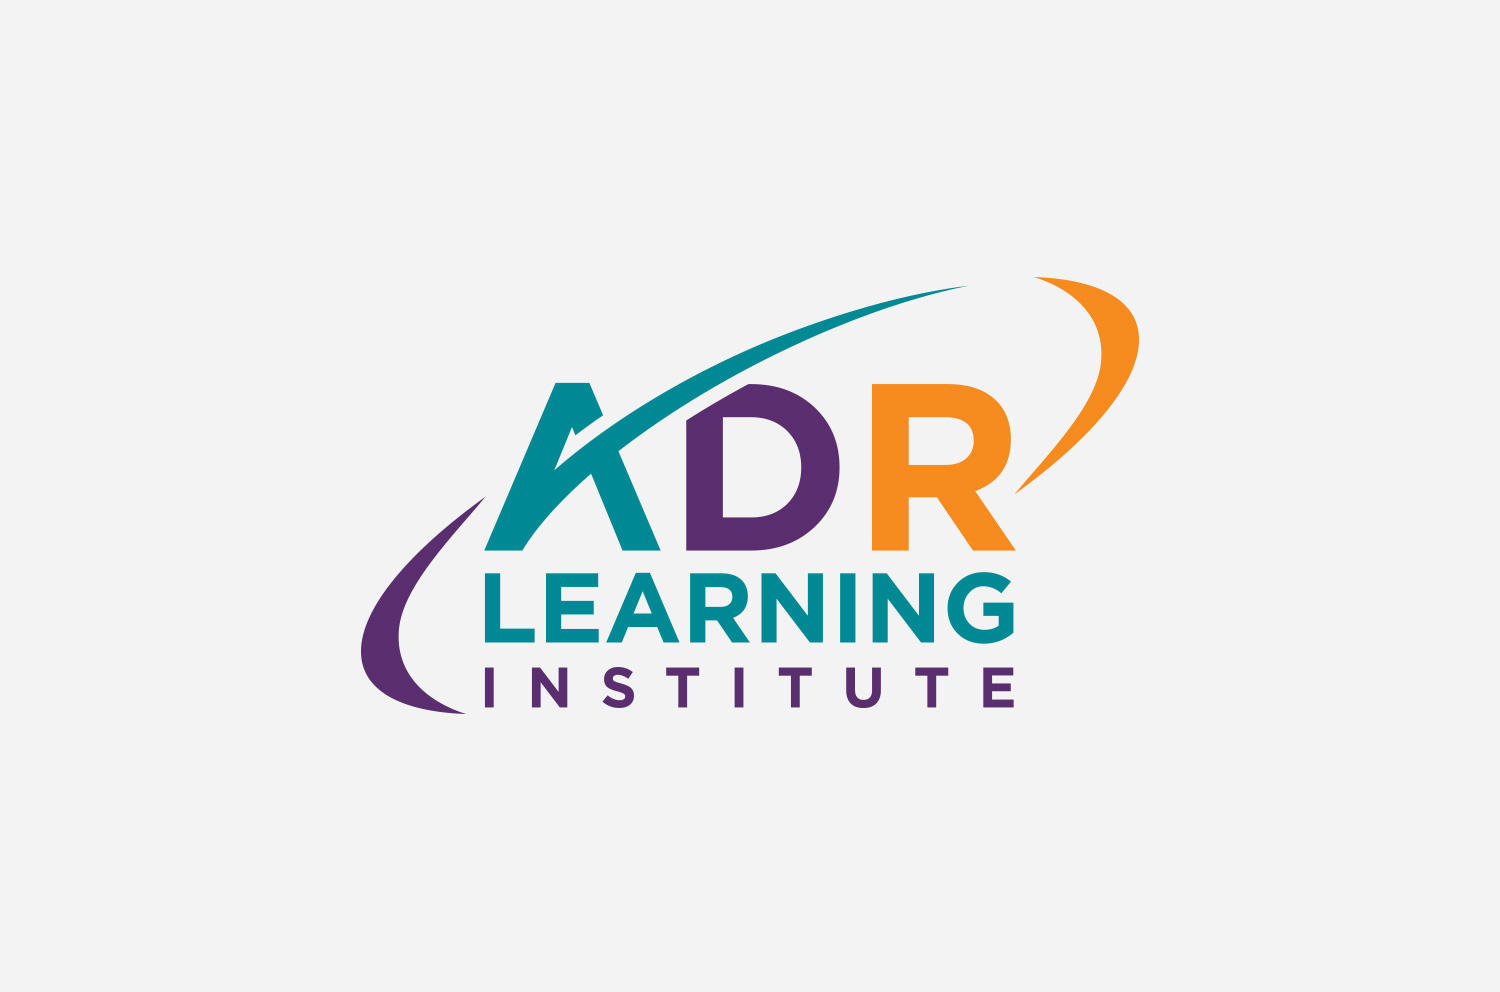 ADR-Learning-Institute-Logo.jpg